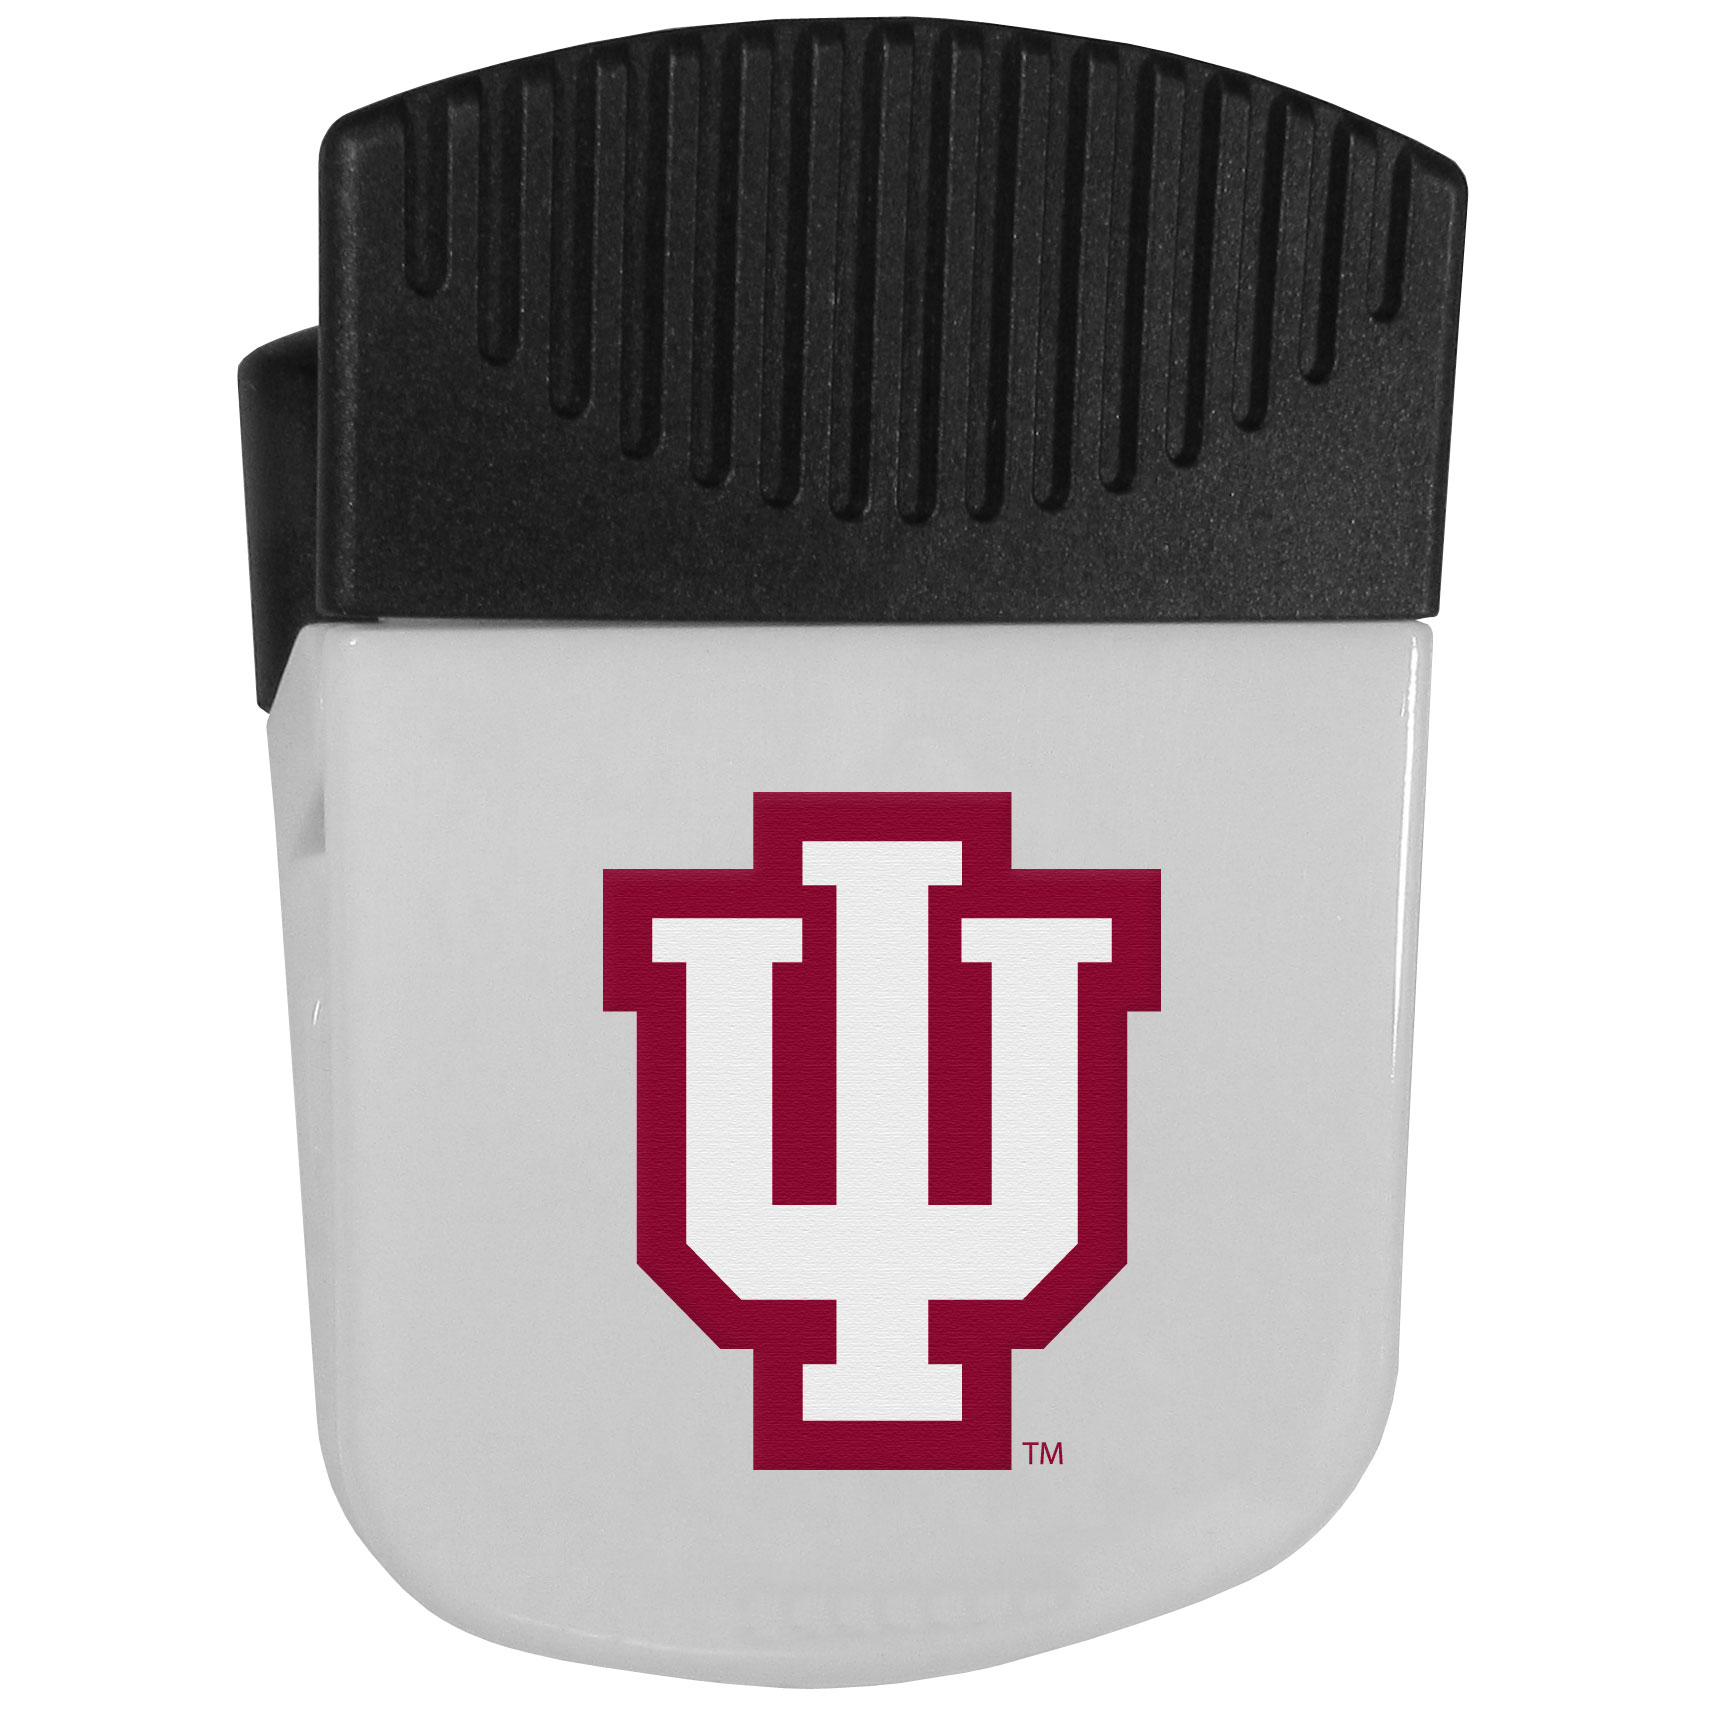 Indiana Hoosiers Chip Clip Magnet - Use this attractive clip magnet to hold memos, photos or appointment cards on the fridge or take it down keep use it to clip bags shut. The magnet features a silk screened Indiana Hoosiers logo.